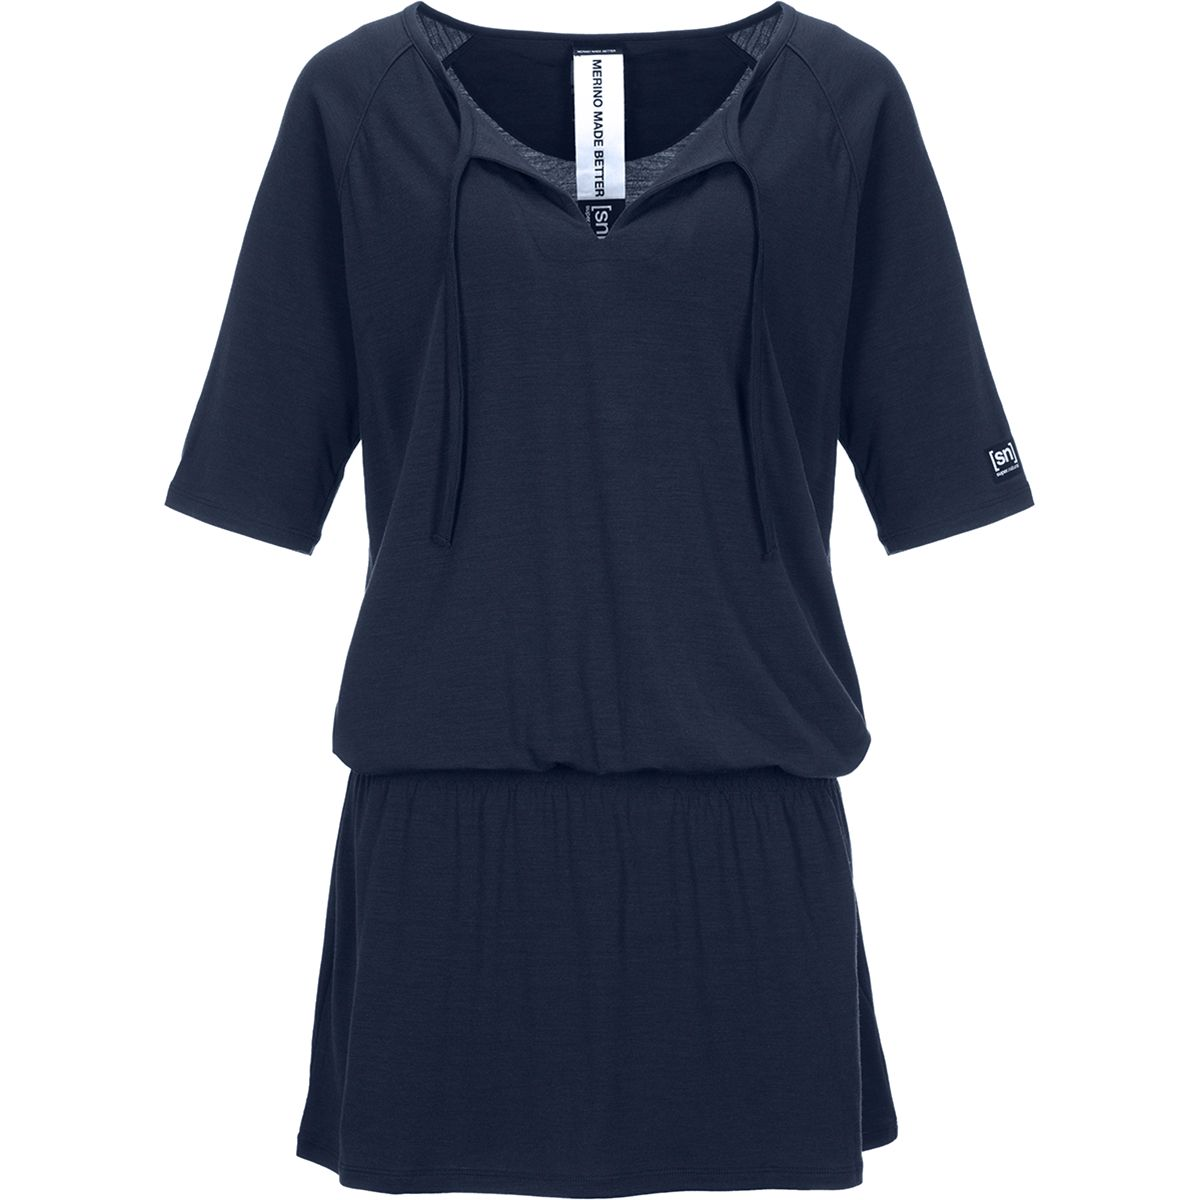 Super.Natural Damen Vacation Kleid (Größe L, Blau) | Kleider > Damen